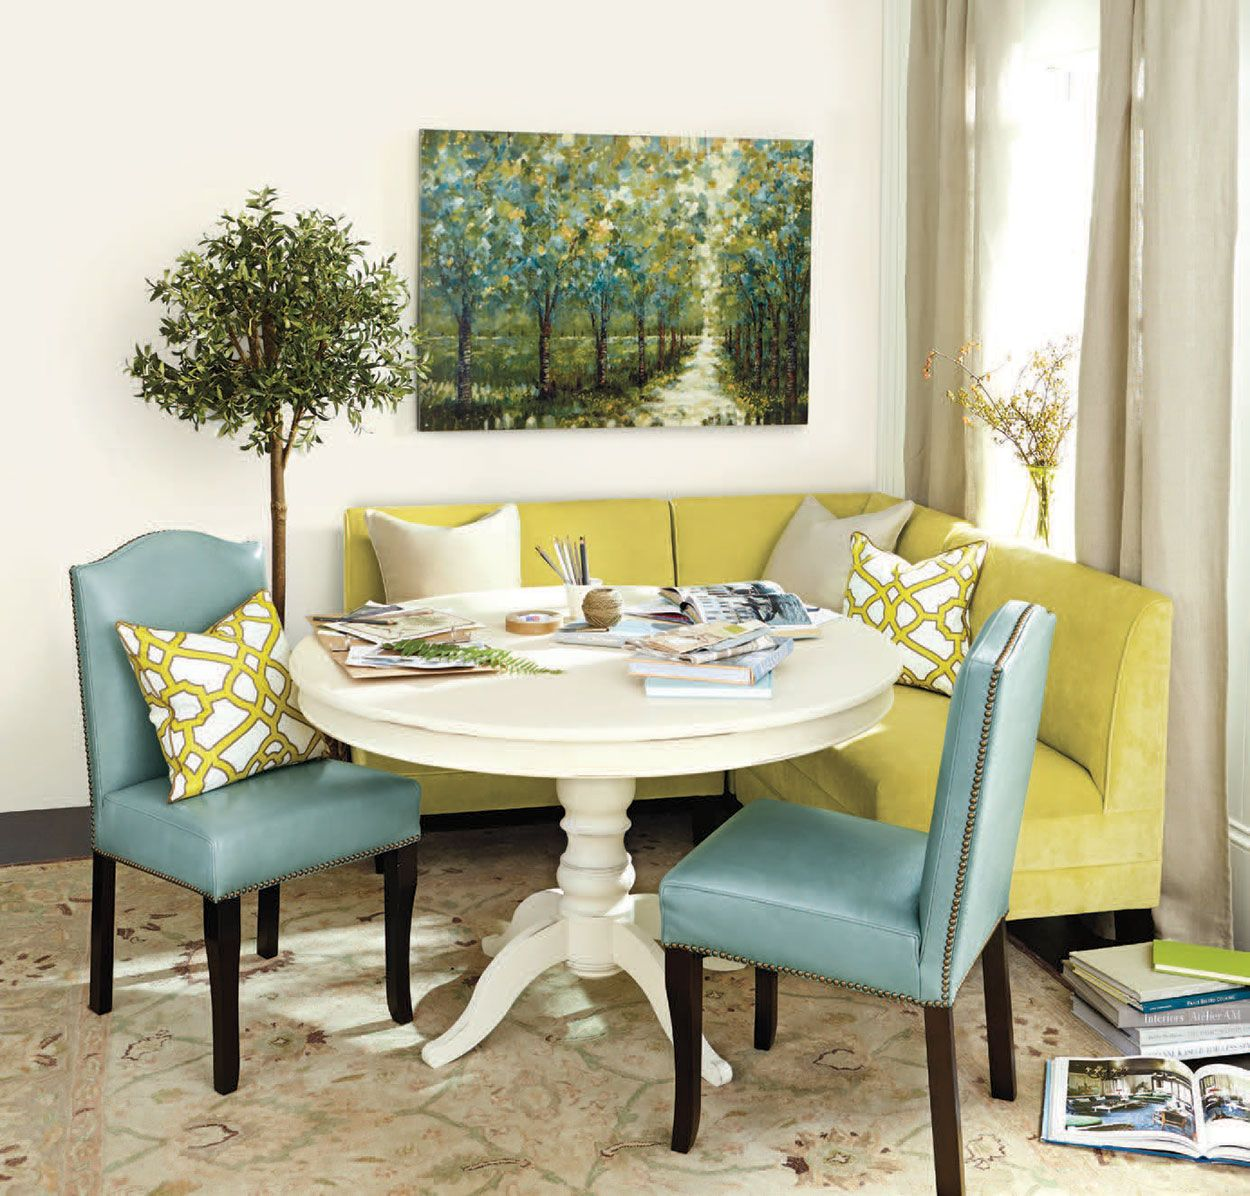 A Chartreuse Banquette And Blue Leather Chairs Turn A Small Corner Into A  Cozy Space To